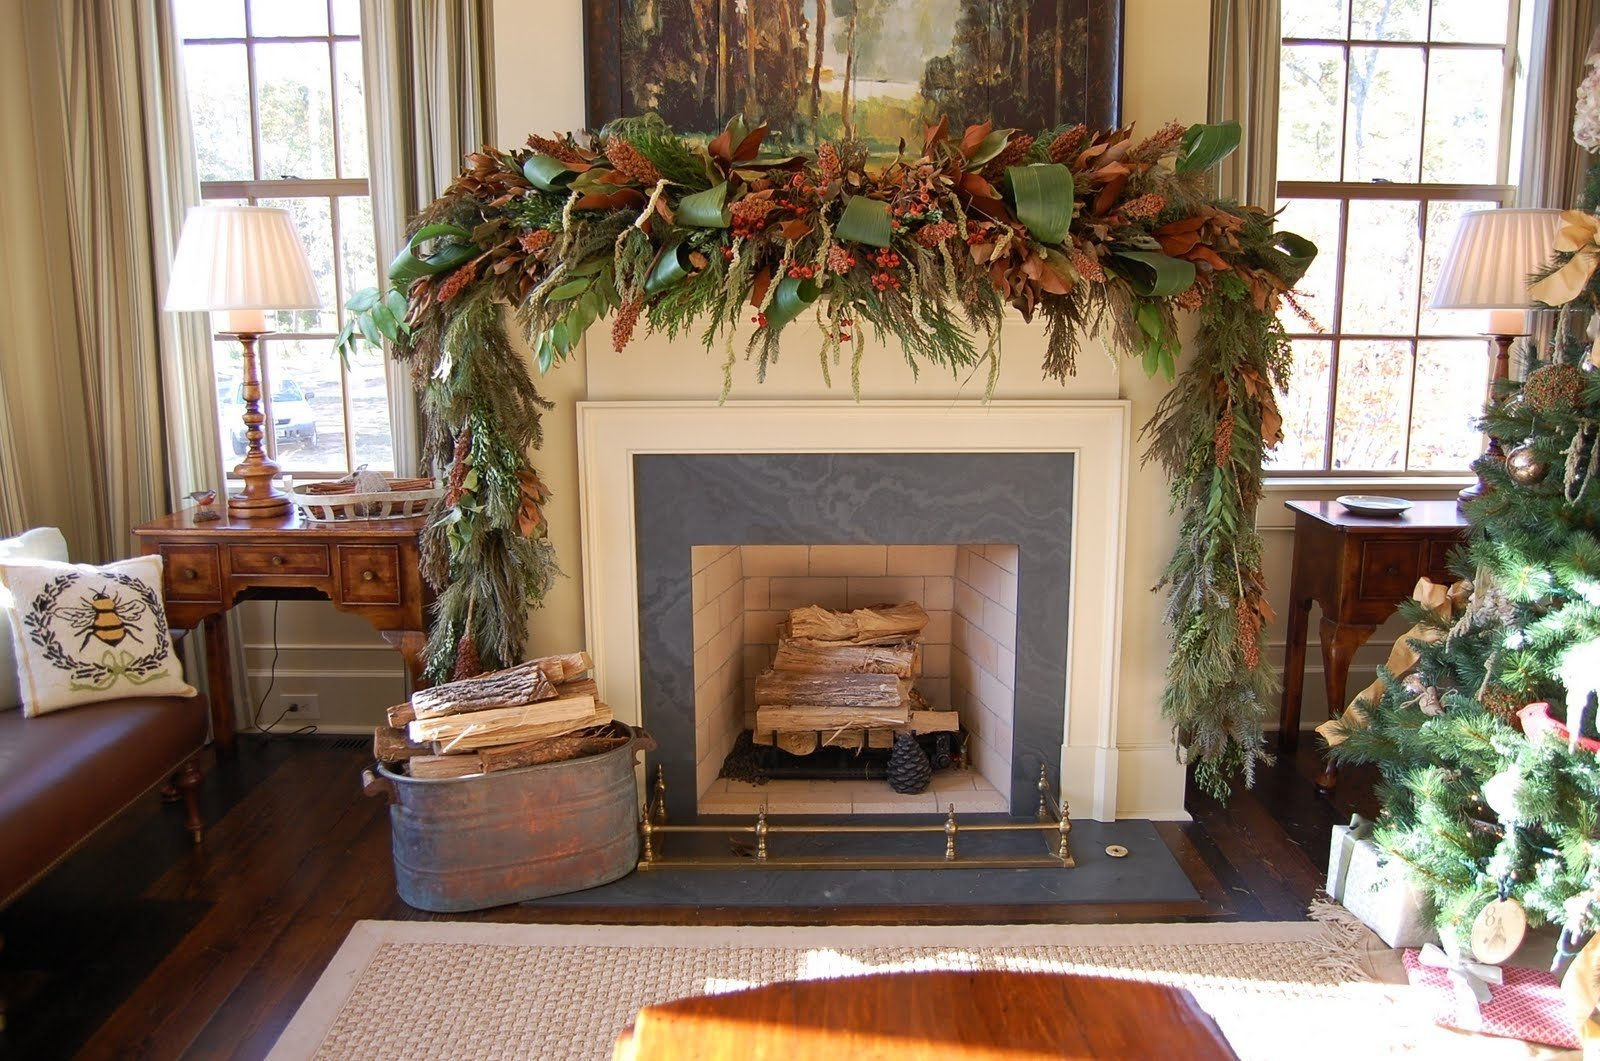 10 Famous Southern Living Fall Decorating Ideas christmas mantel decorated natural greenery southern living dma 2020